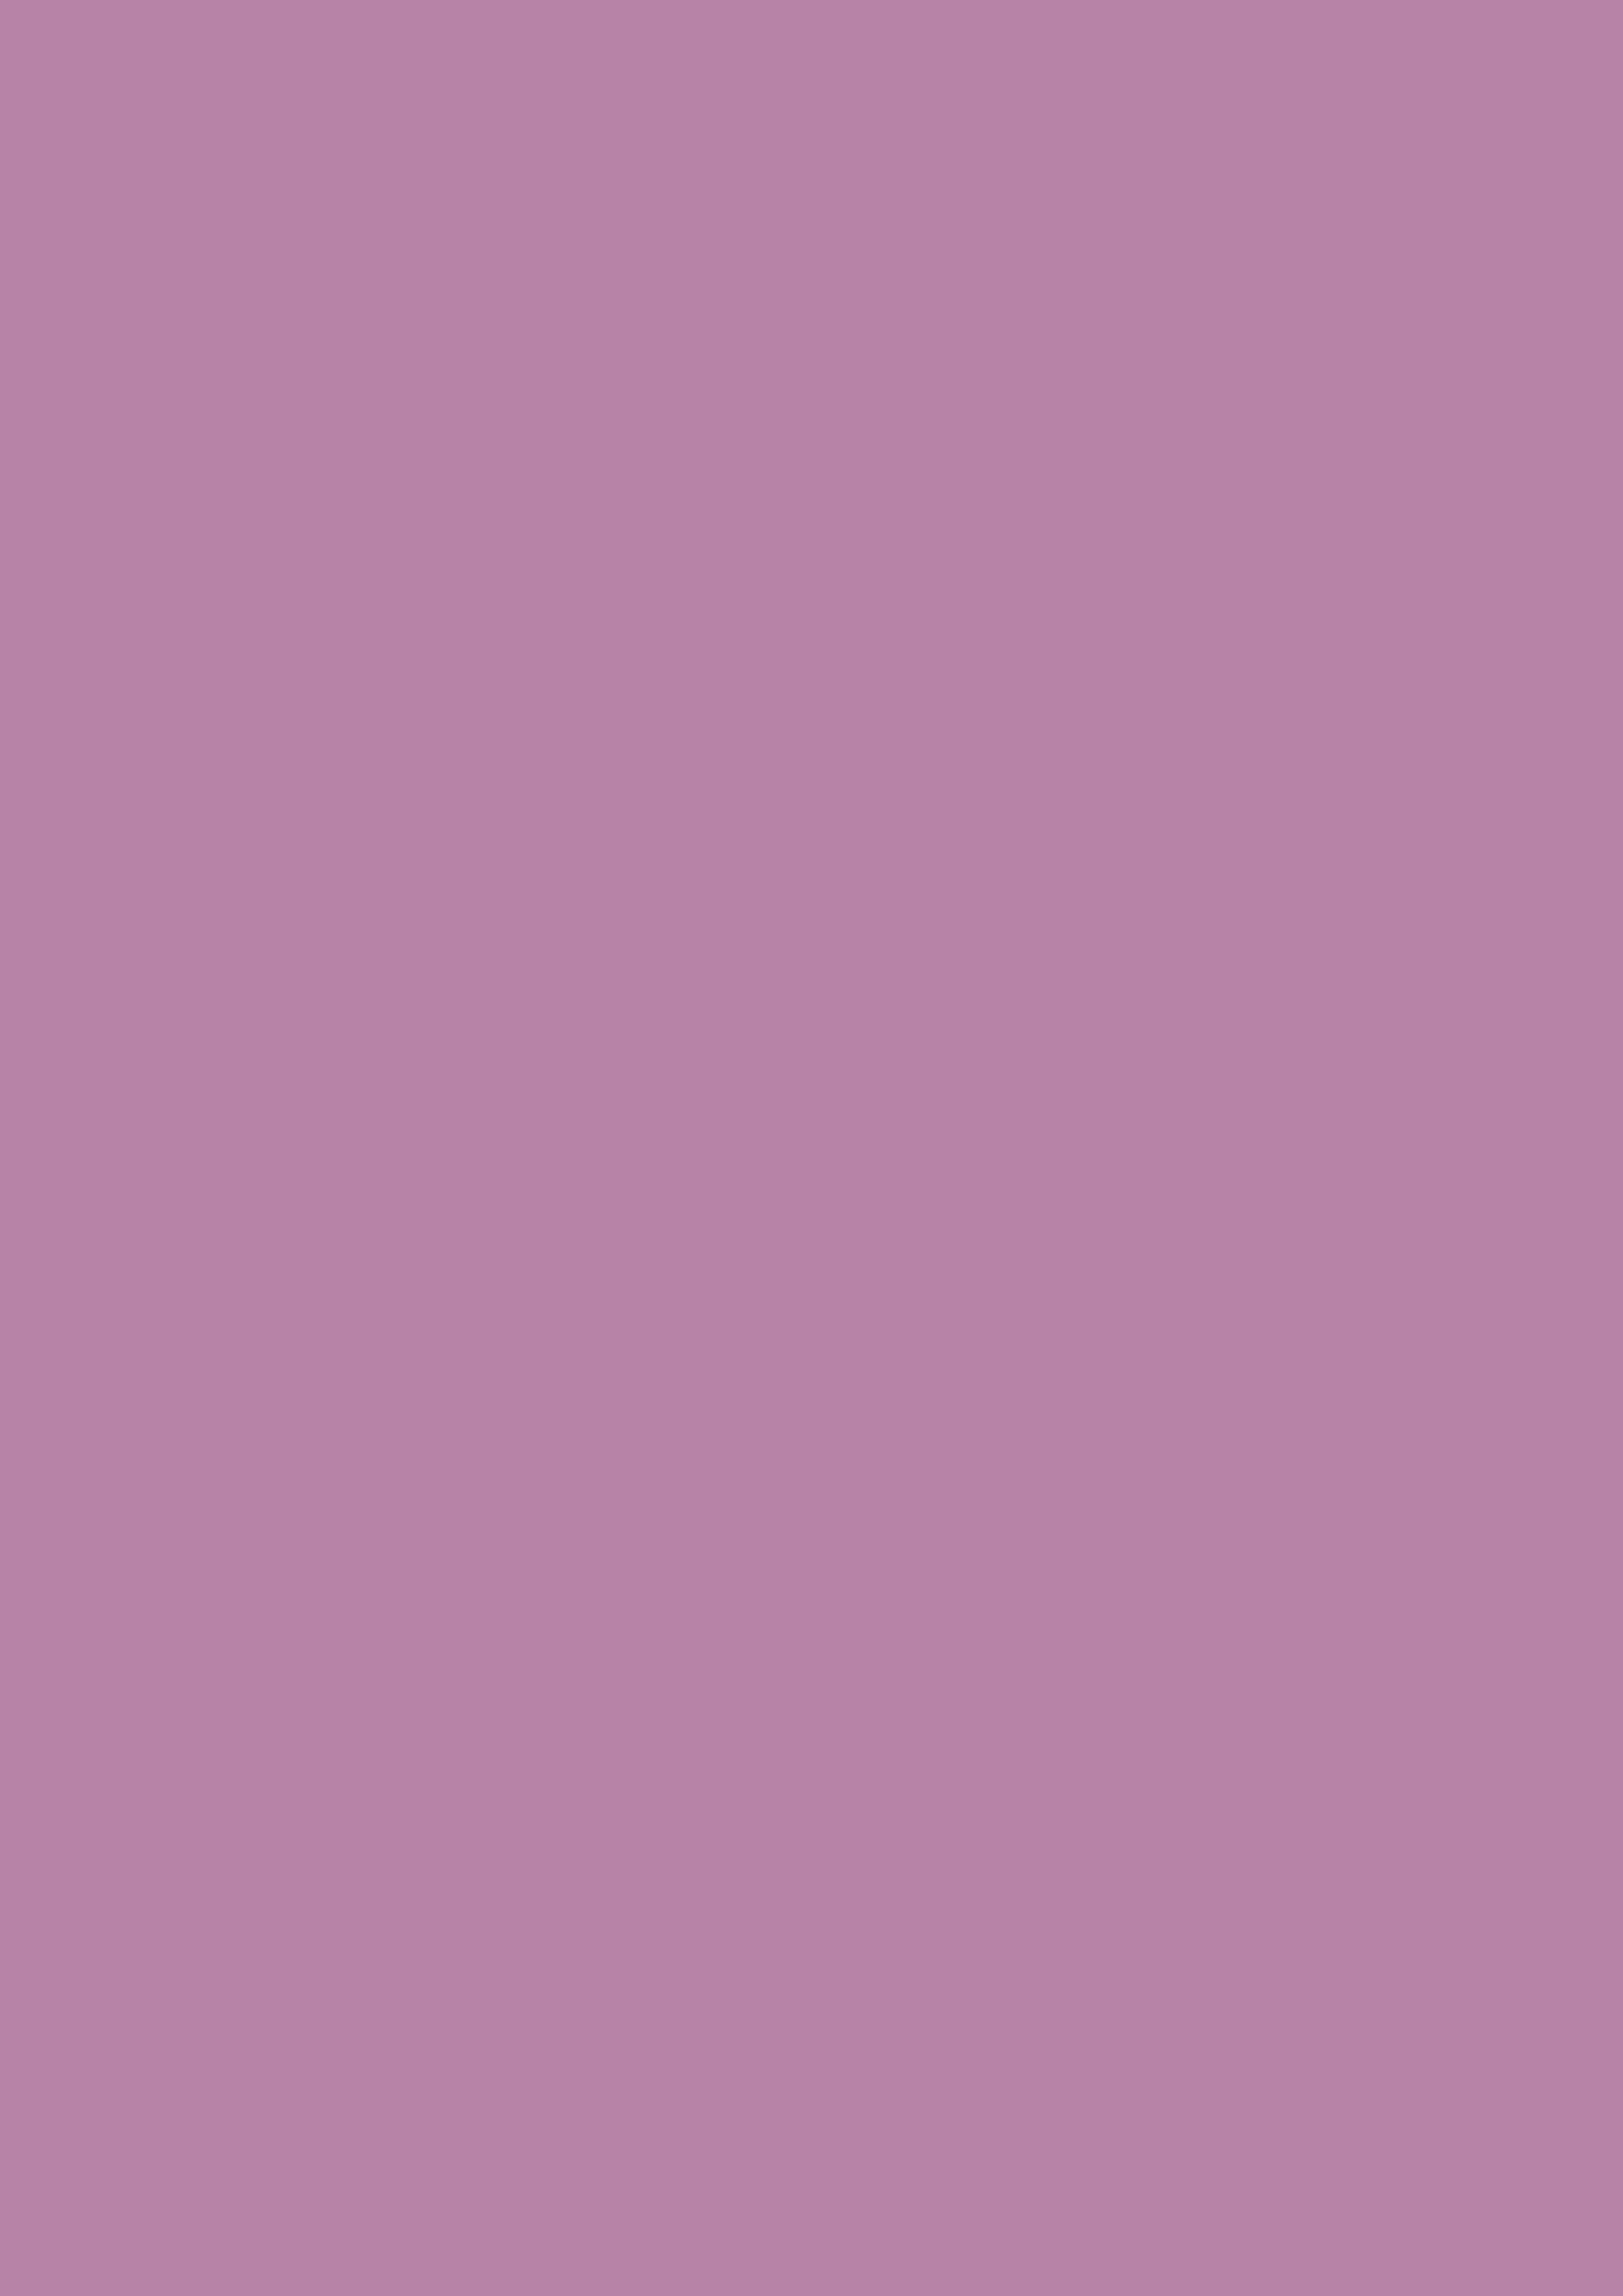 2480x3508 Opera Mauve Solid Color Background